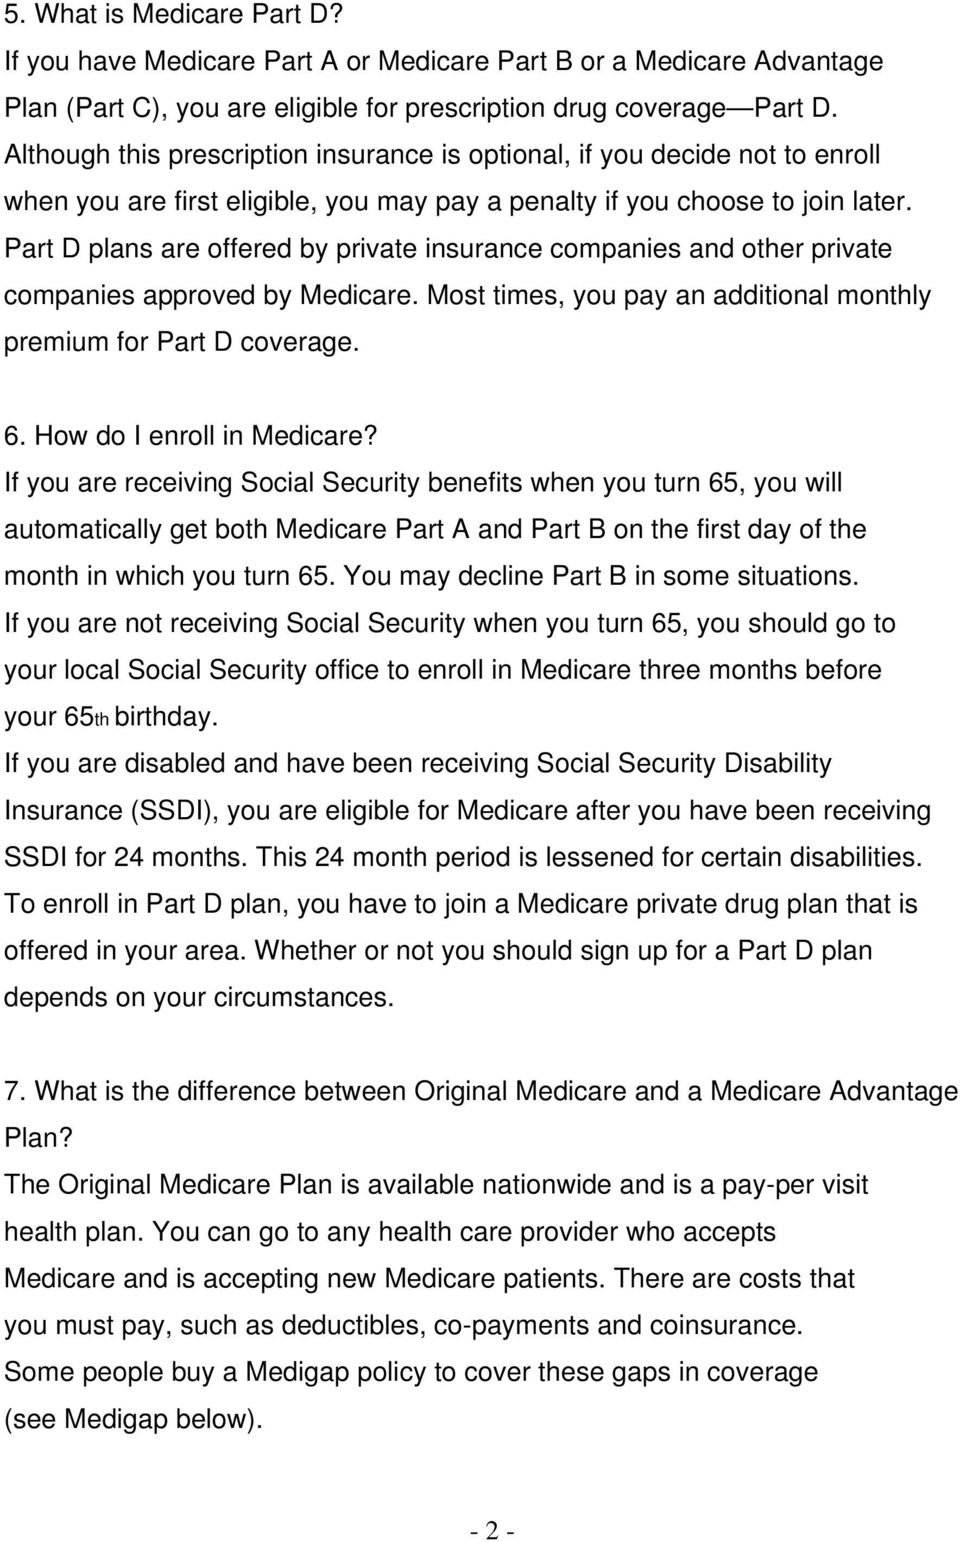 Part D plans are offered by private insurance companies and other private companies approved by Medicare. Most times, you pay an additional monthly premium for Part D coverage. 6.